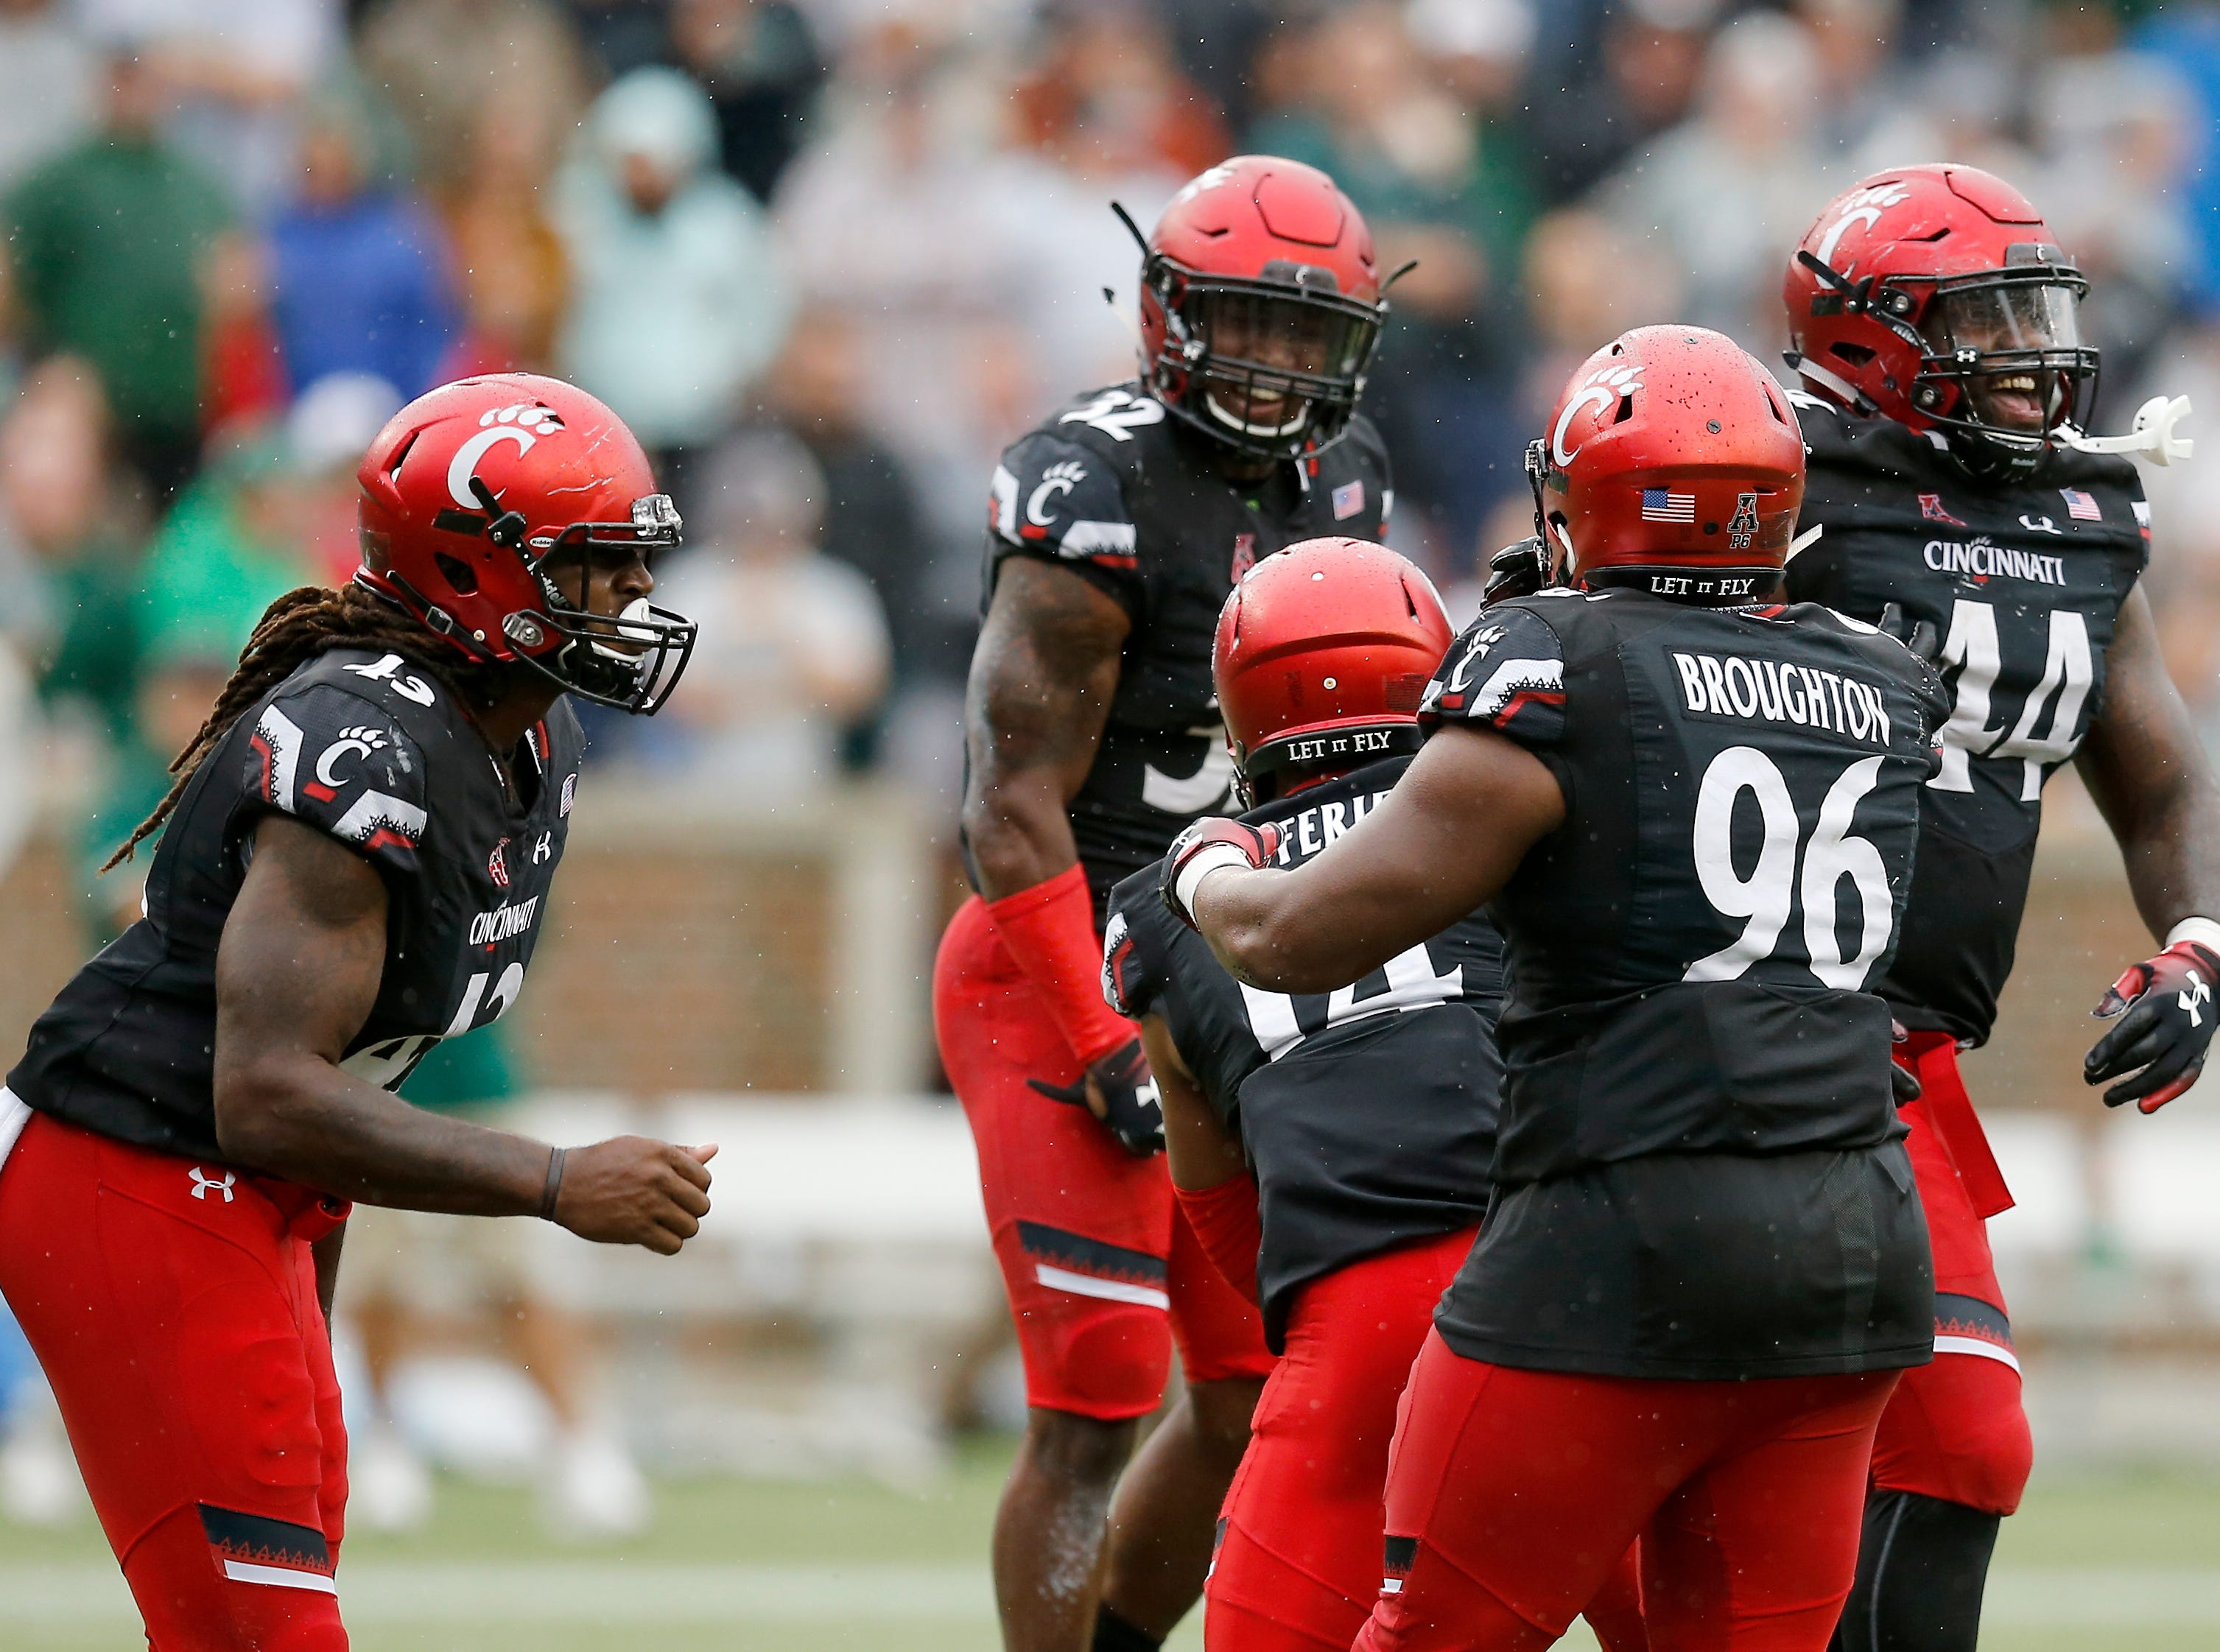 The Bearcats defense celebrates a successful goal line stands to keep the lead in the final minute of the fourth quarter of the NCAA football game between the Cincinnati Bearcats and the Ohio Bobcats at Nippert Stadium on the University of Cincinnati campus in Cincinnati on Saturday, Sept. 22, 2018. The Bearcats overcame a 24-7 deficit at halftime to win 34-30, improving to 4-0 on the season.